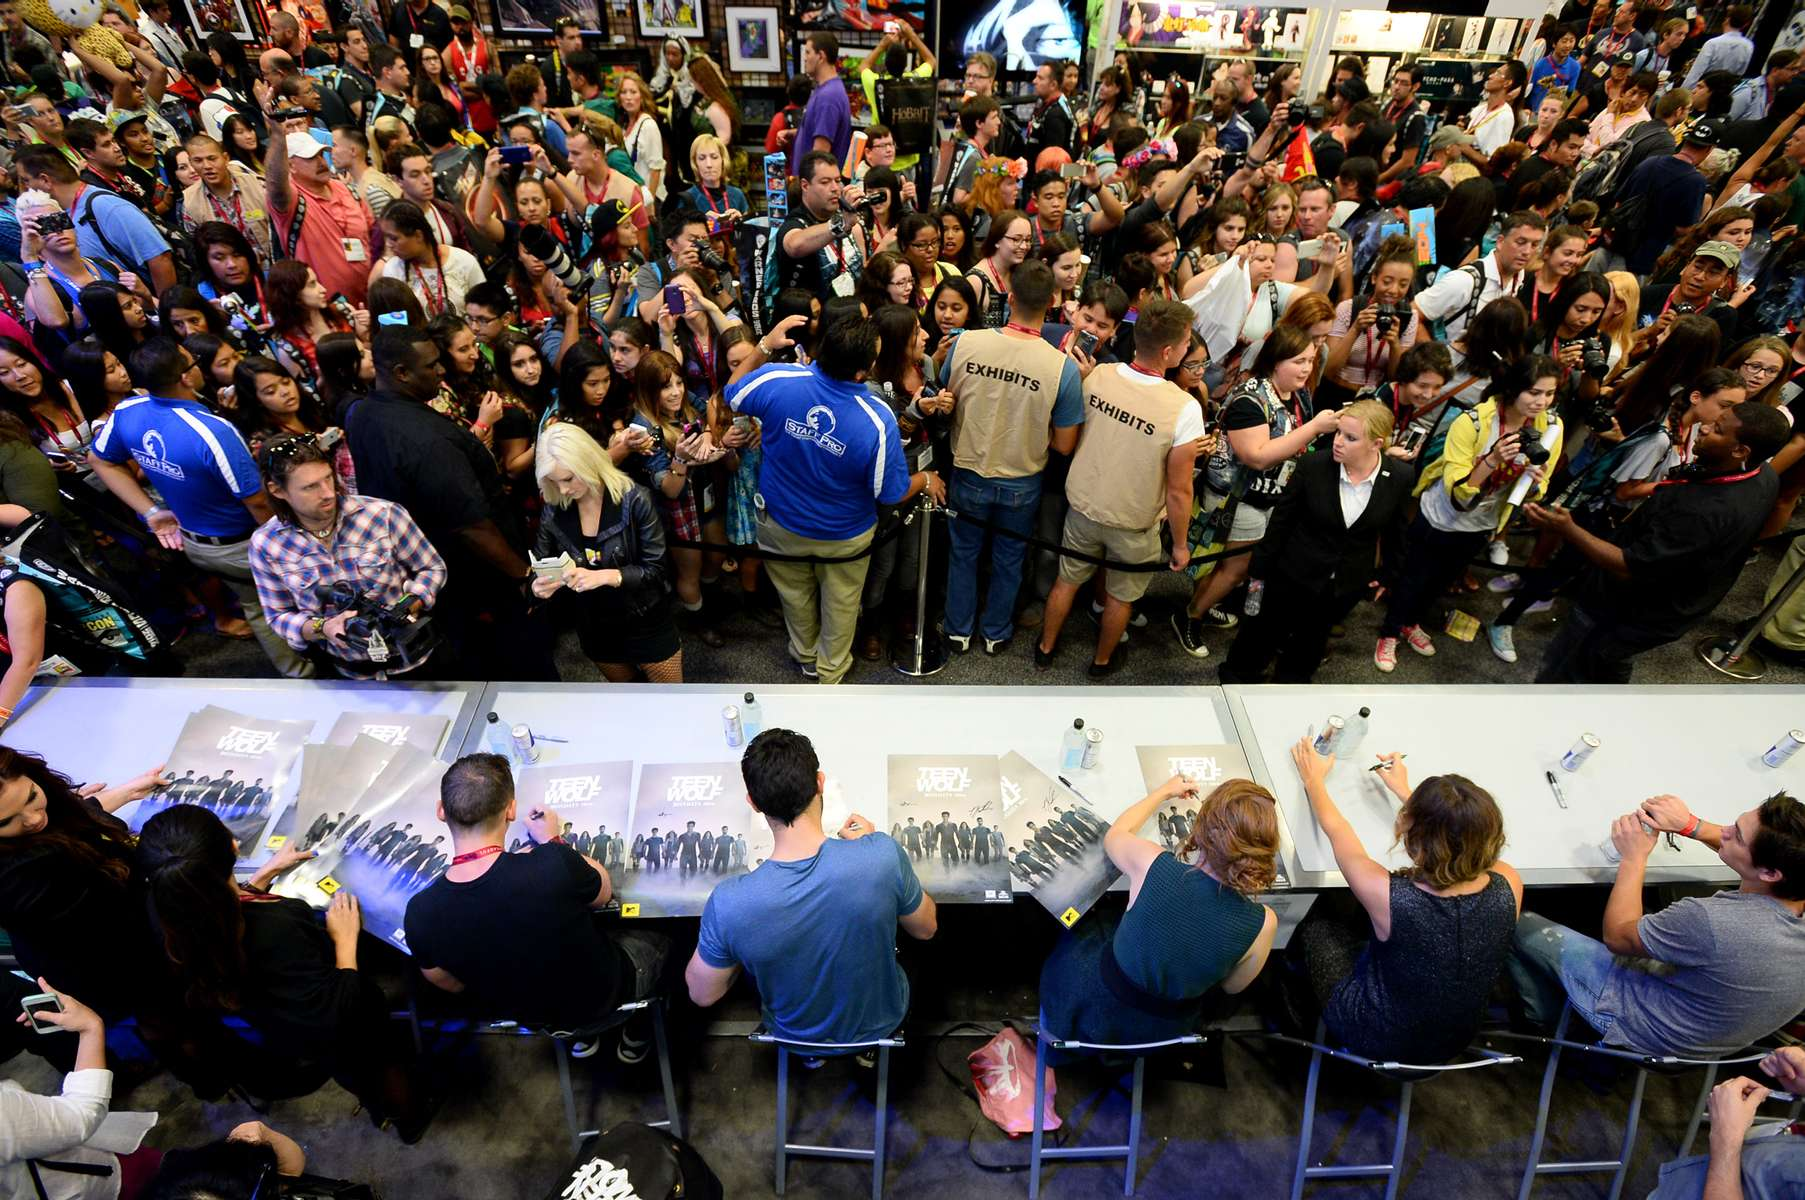 The cast of {quote}Teen Wolf{quote} signs autographs during Comic Con on Friday, July 25, 2014 in San Diego. (Photo by Jordan Strauss/Invision for MTV/AP Images)